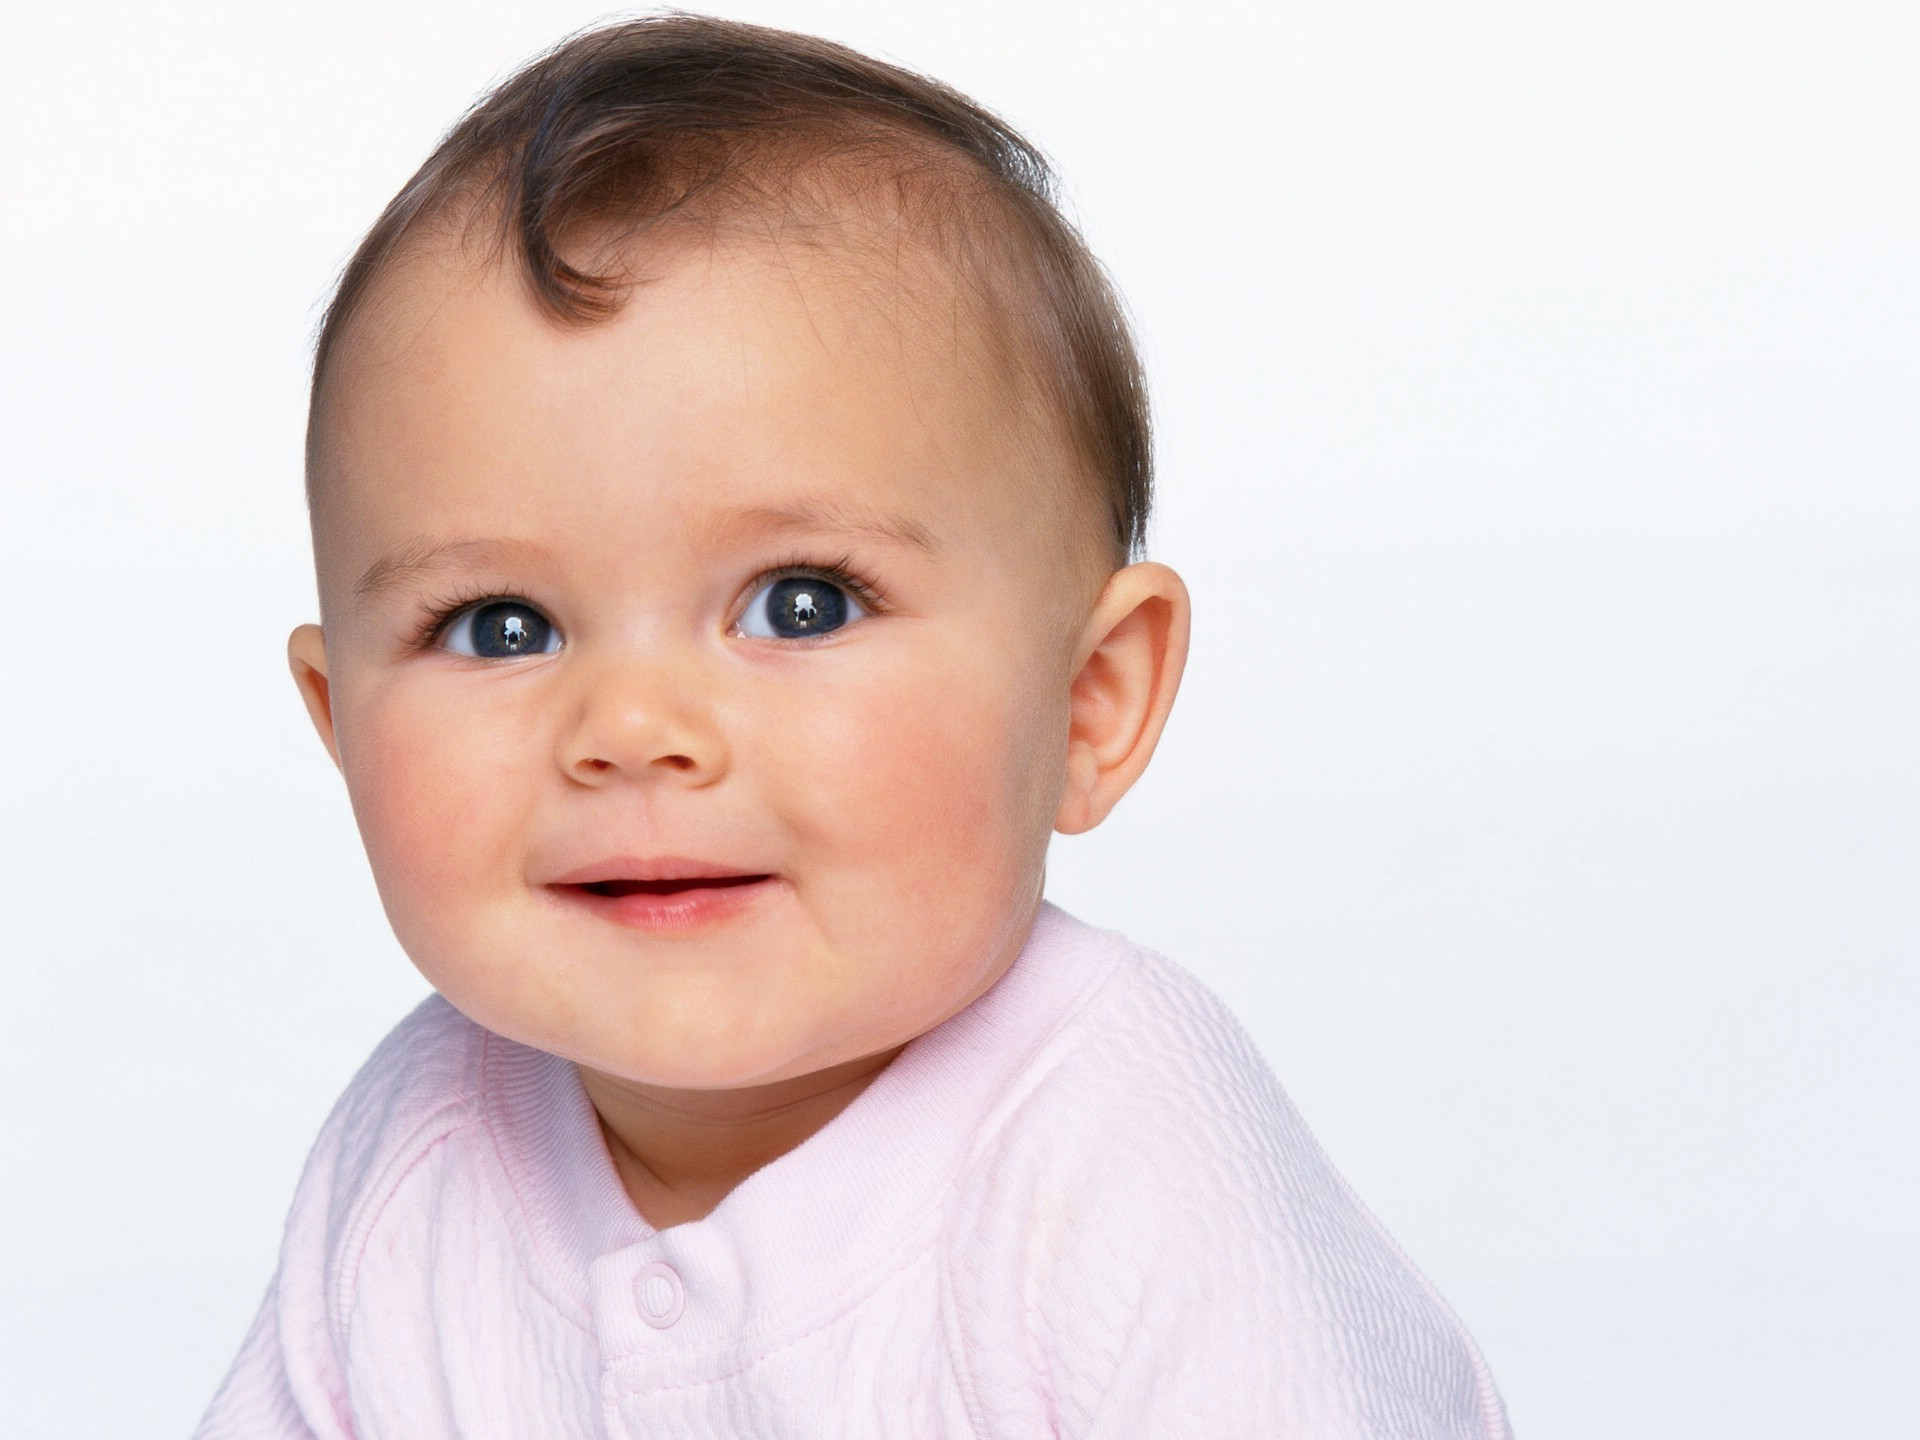 Cute Pictures of Cute Baby Boy Wallpapers